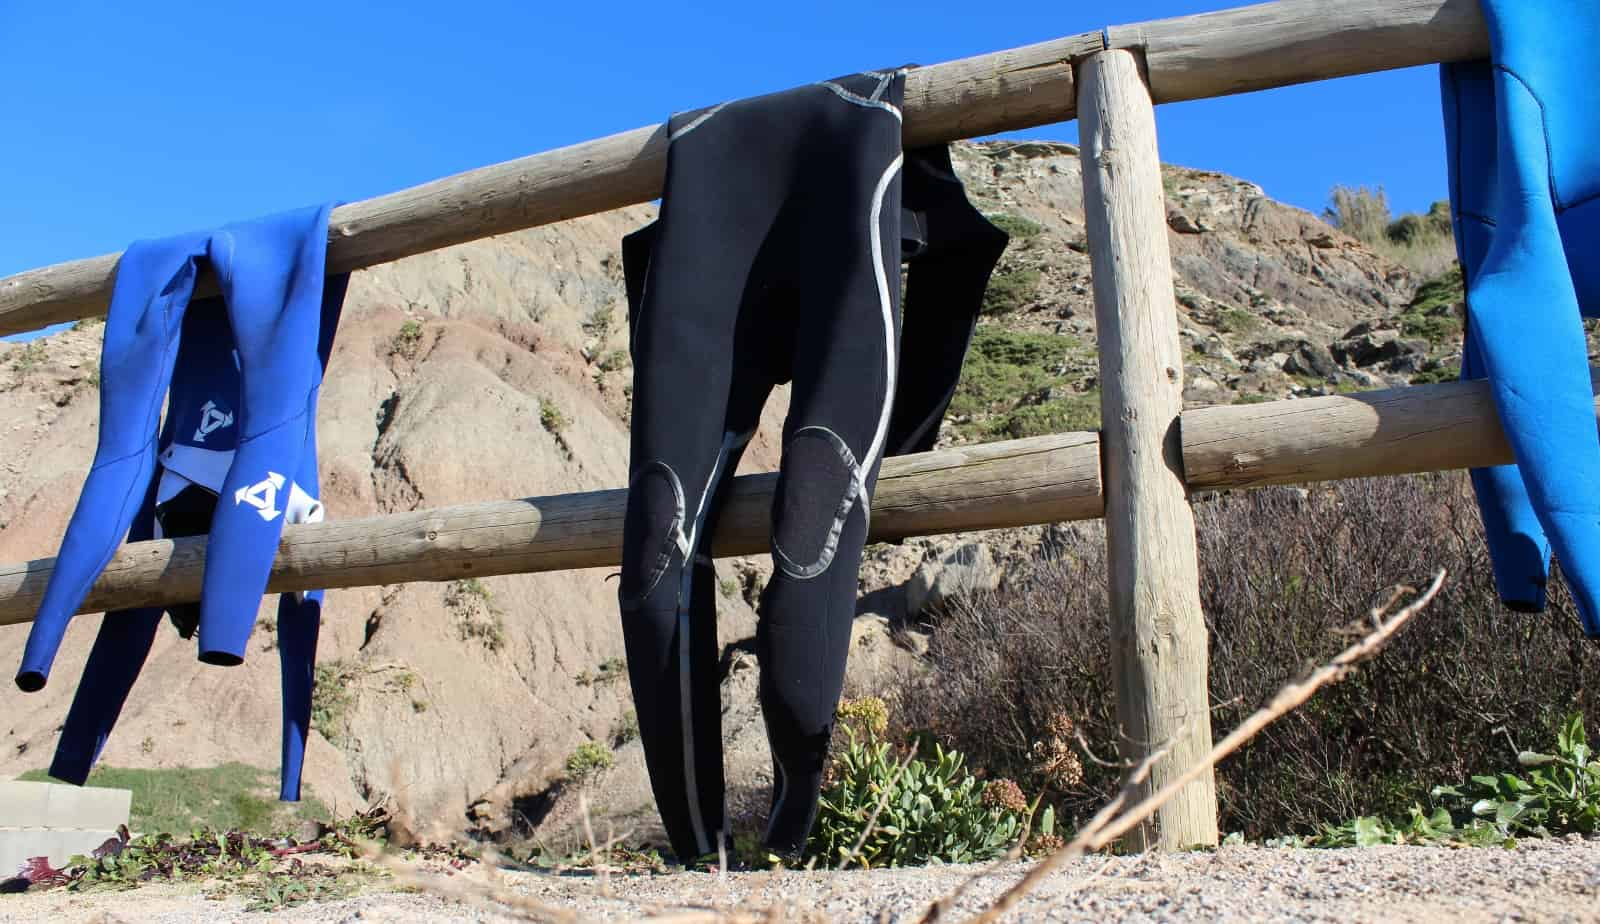 Wetsuit drying in the sun